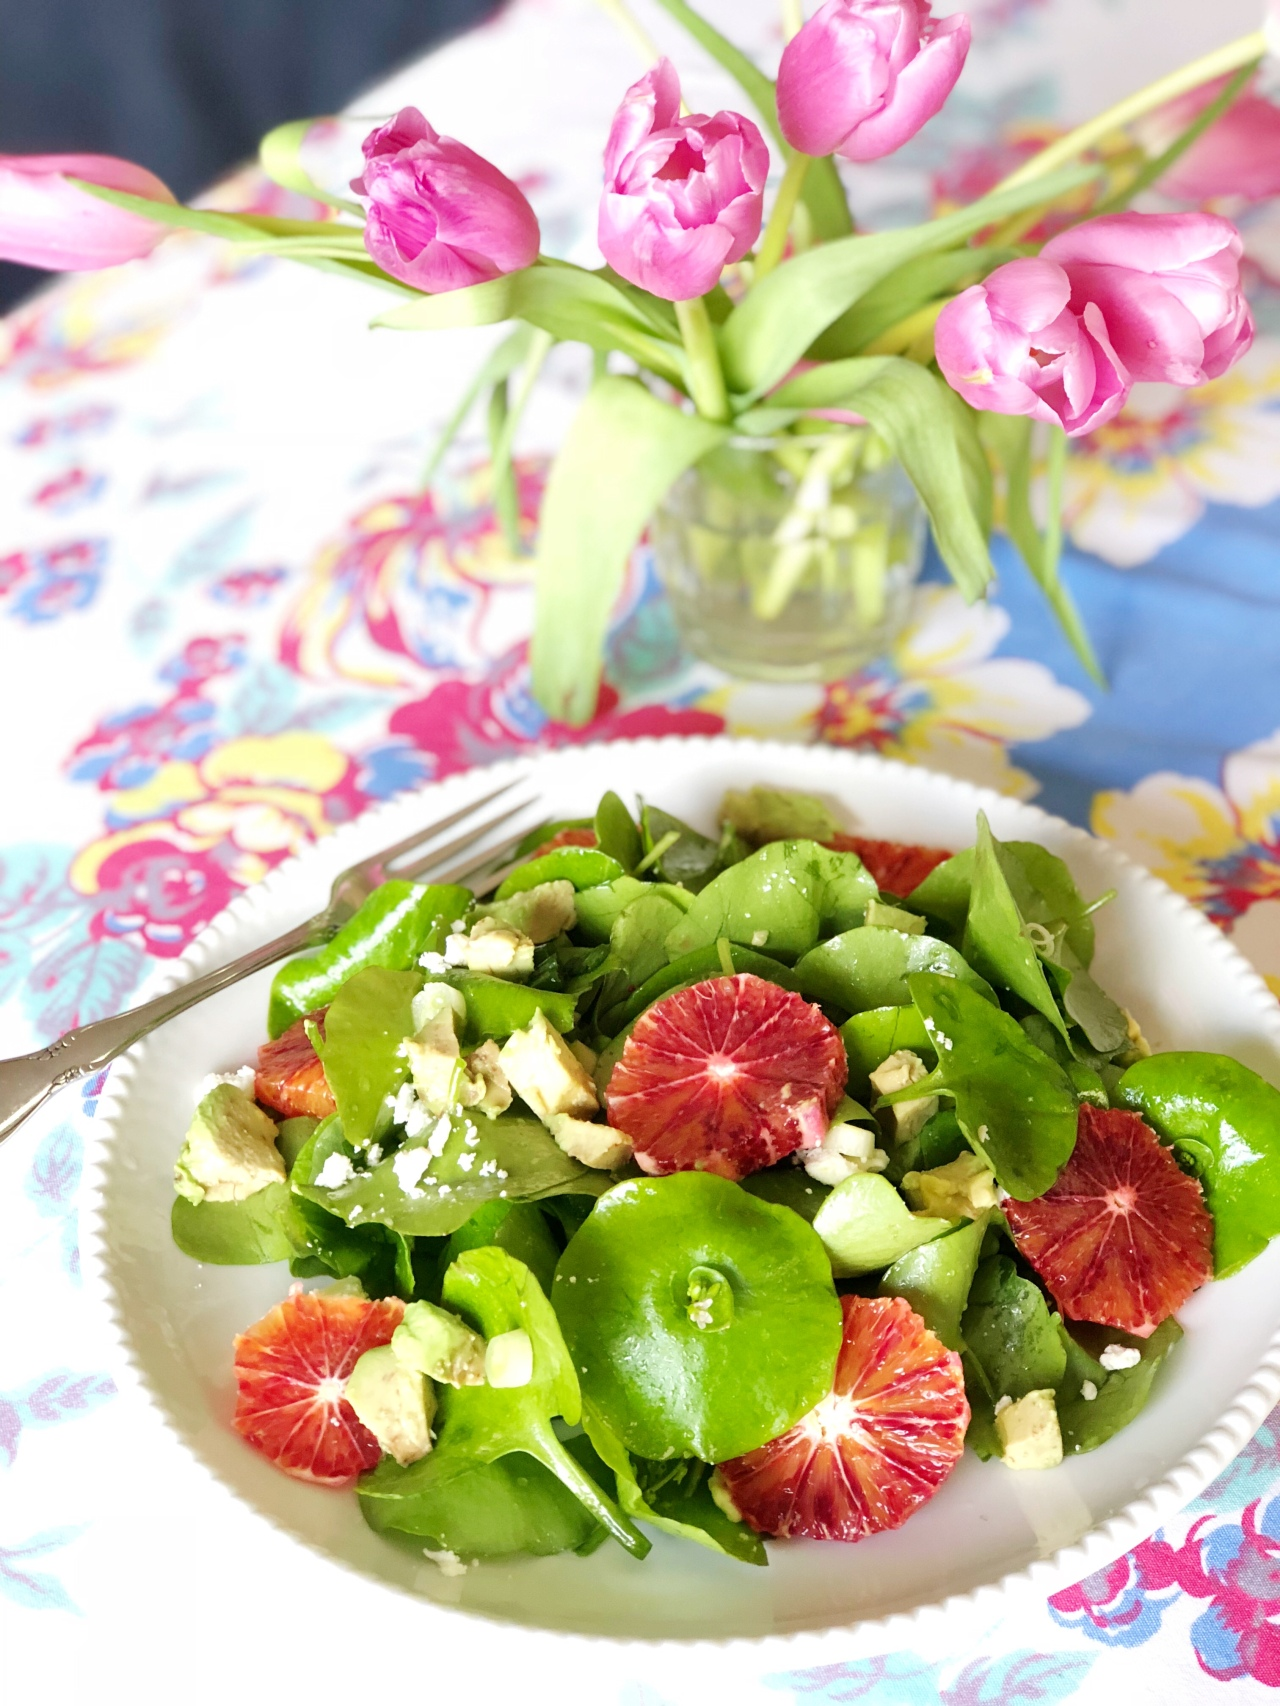 Foraged Feast: Miner's Lettuce Salad with Blood Oranges, Avocado, Mint & Feta